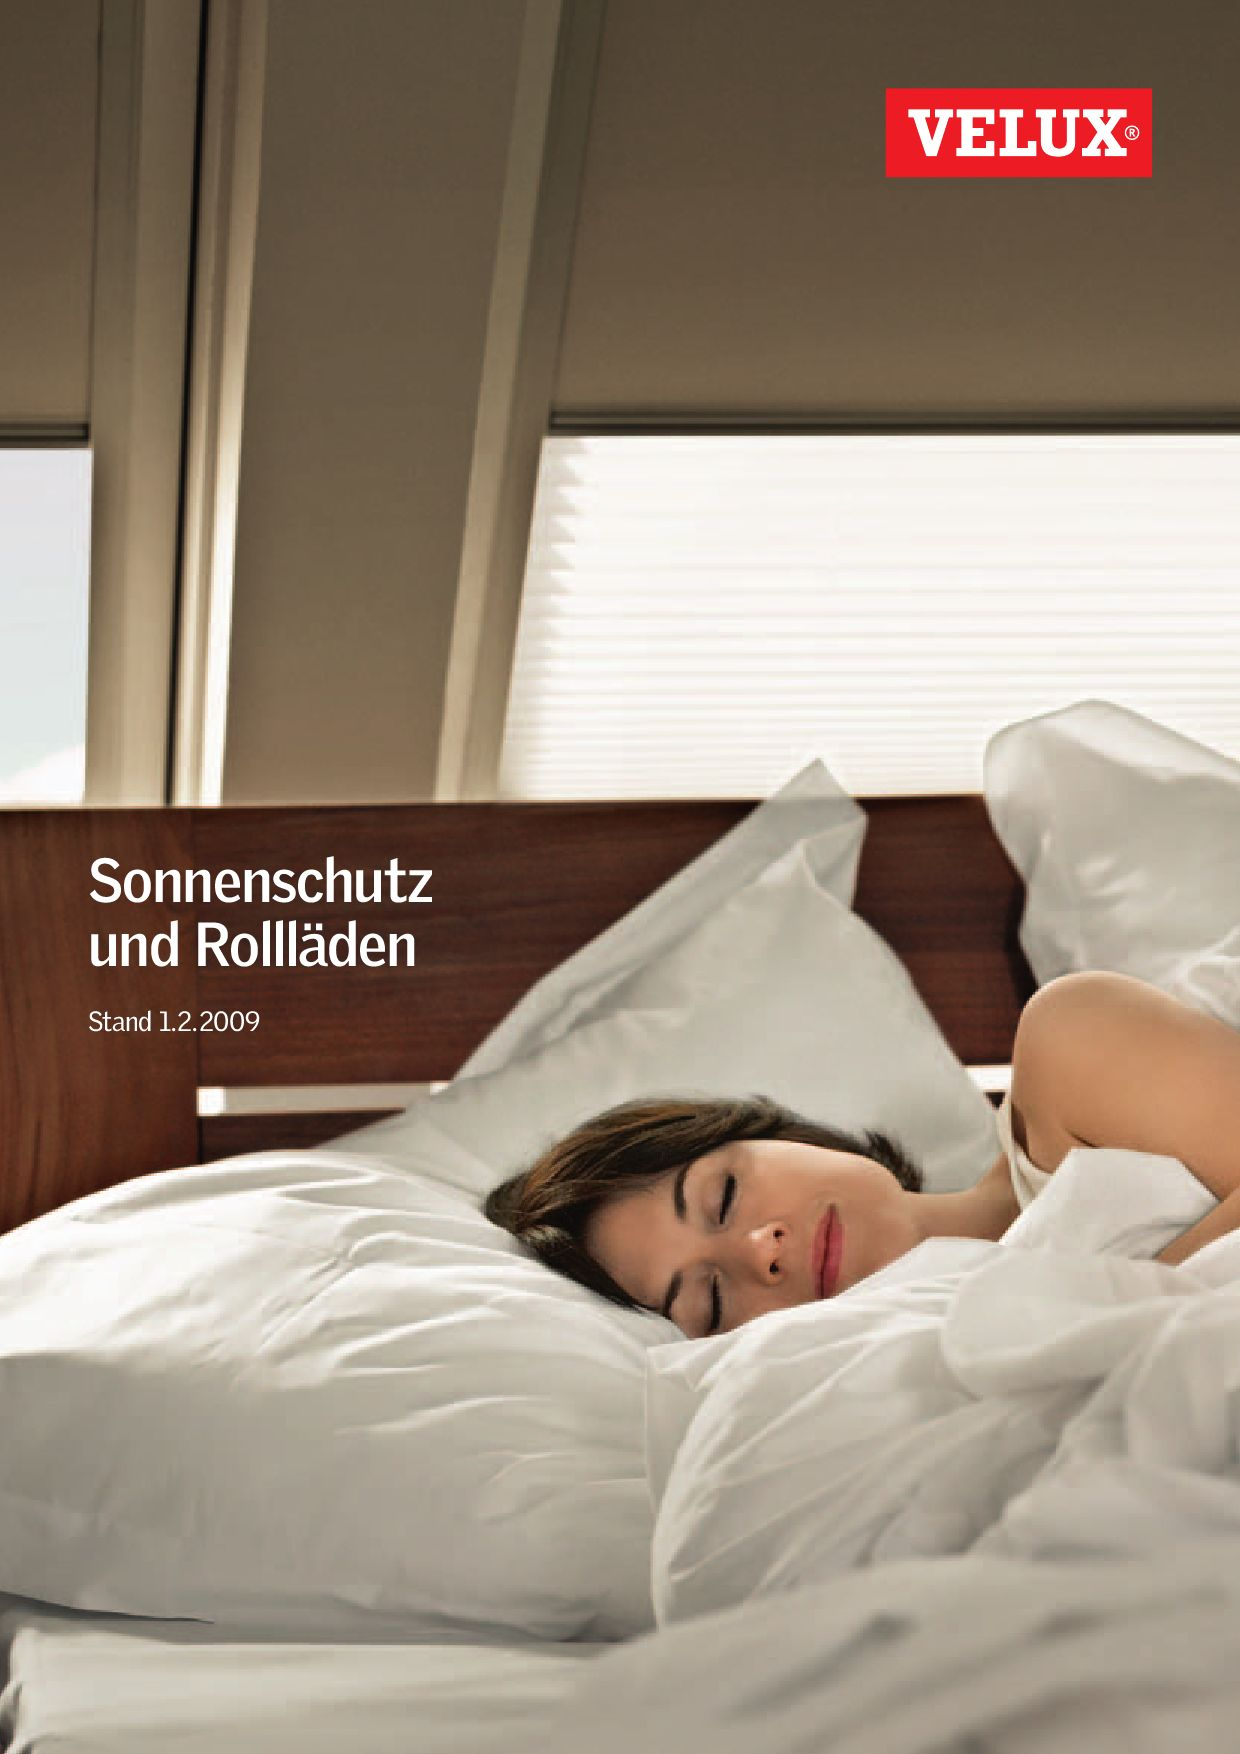 velux sonnenschutz katalog by fenstertue issuu. Black Bedroom Furniture Sets. Home Design Ideas